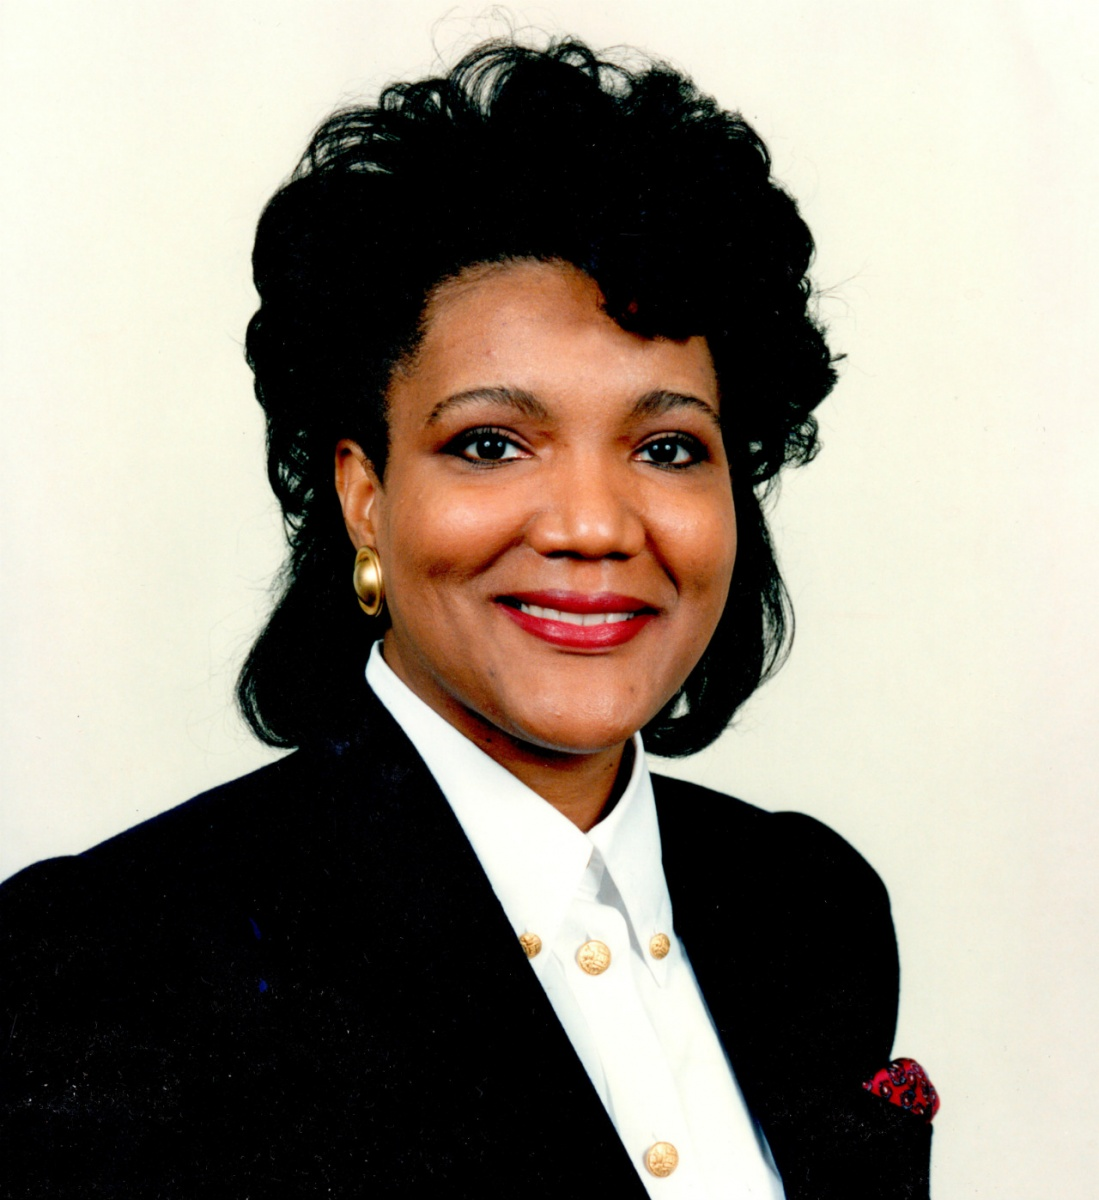 Photo of Cynthia Quaterman -- an African American woman wearing a business suit and smiling at the camera.